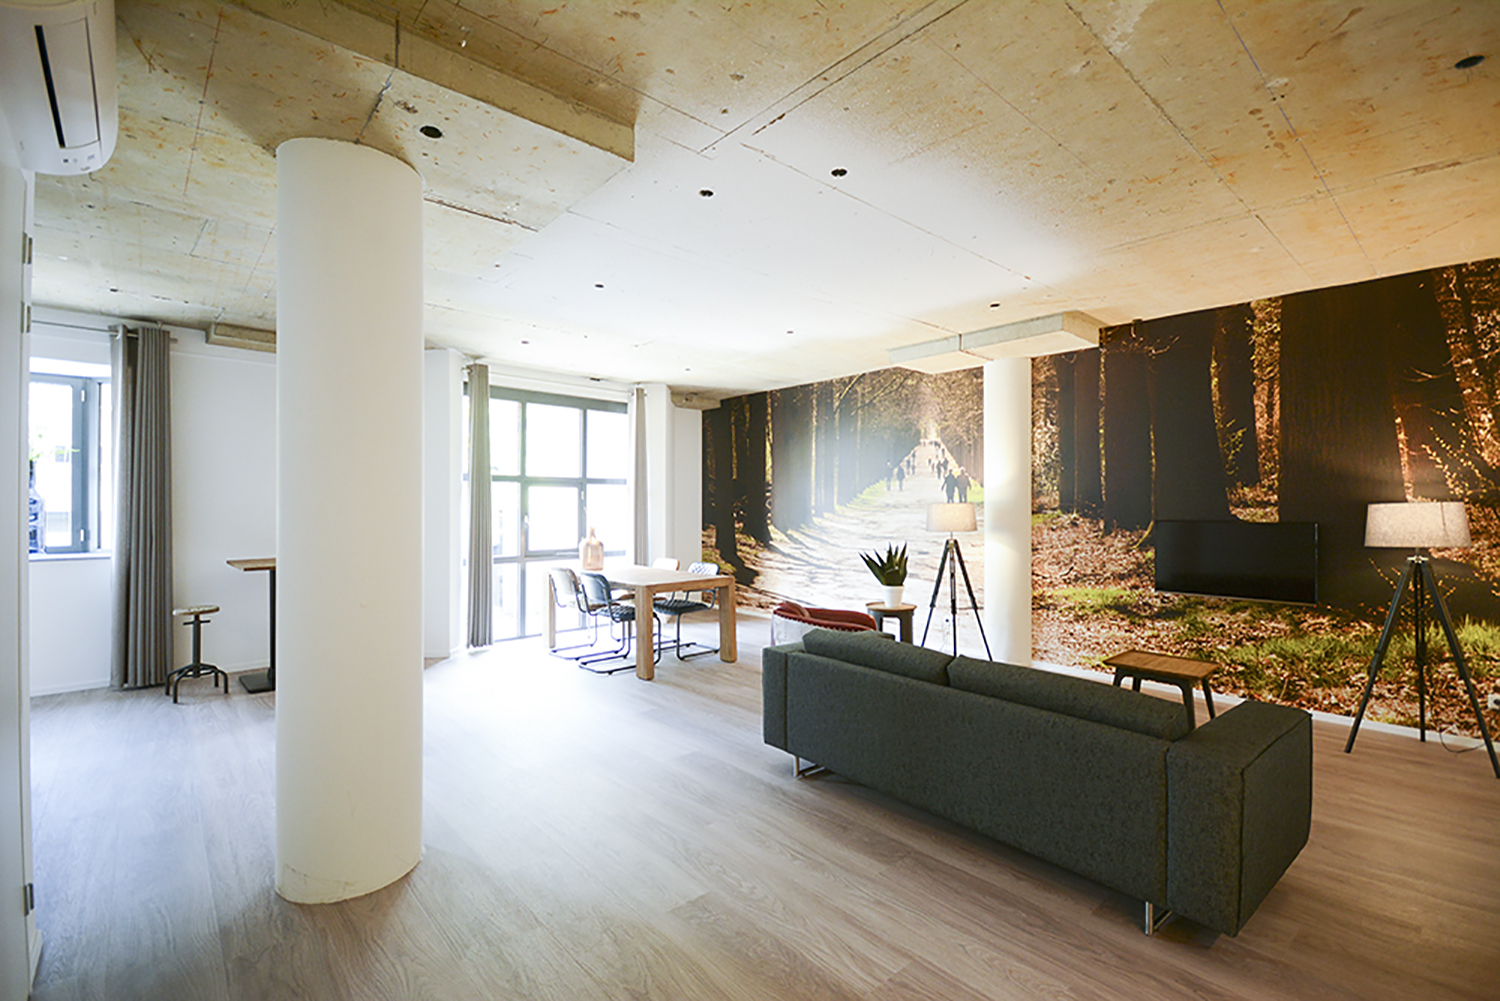 Wallstay Eindhoven woonkamer 28